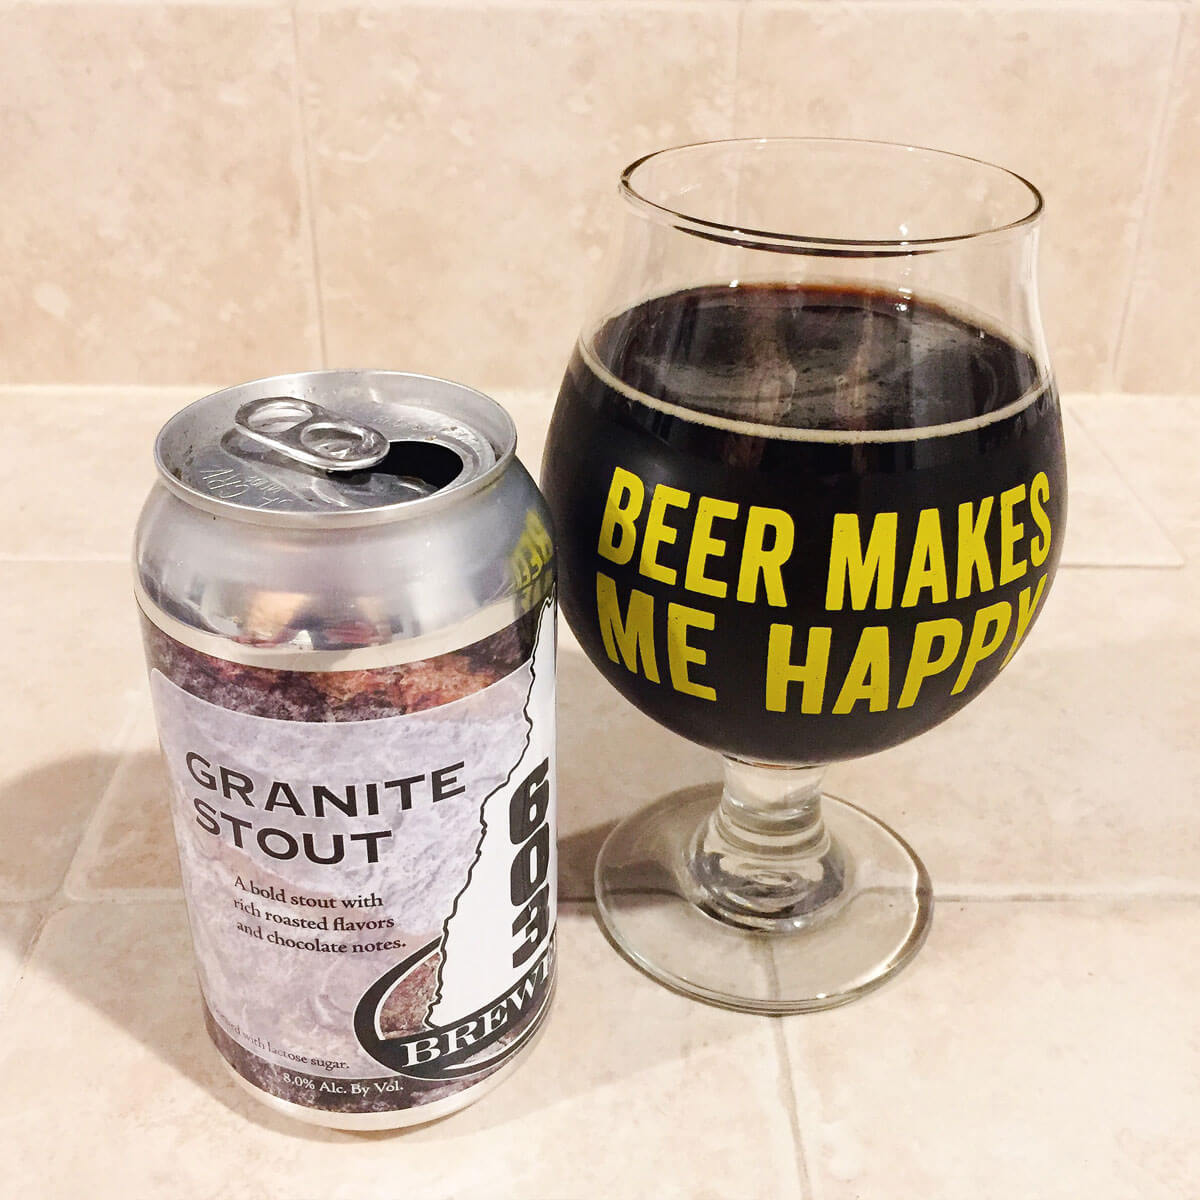 Granite Stout, an American Stout by 603 Brewery